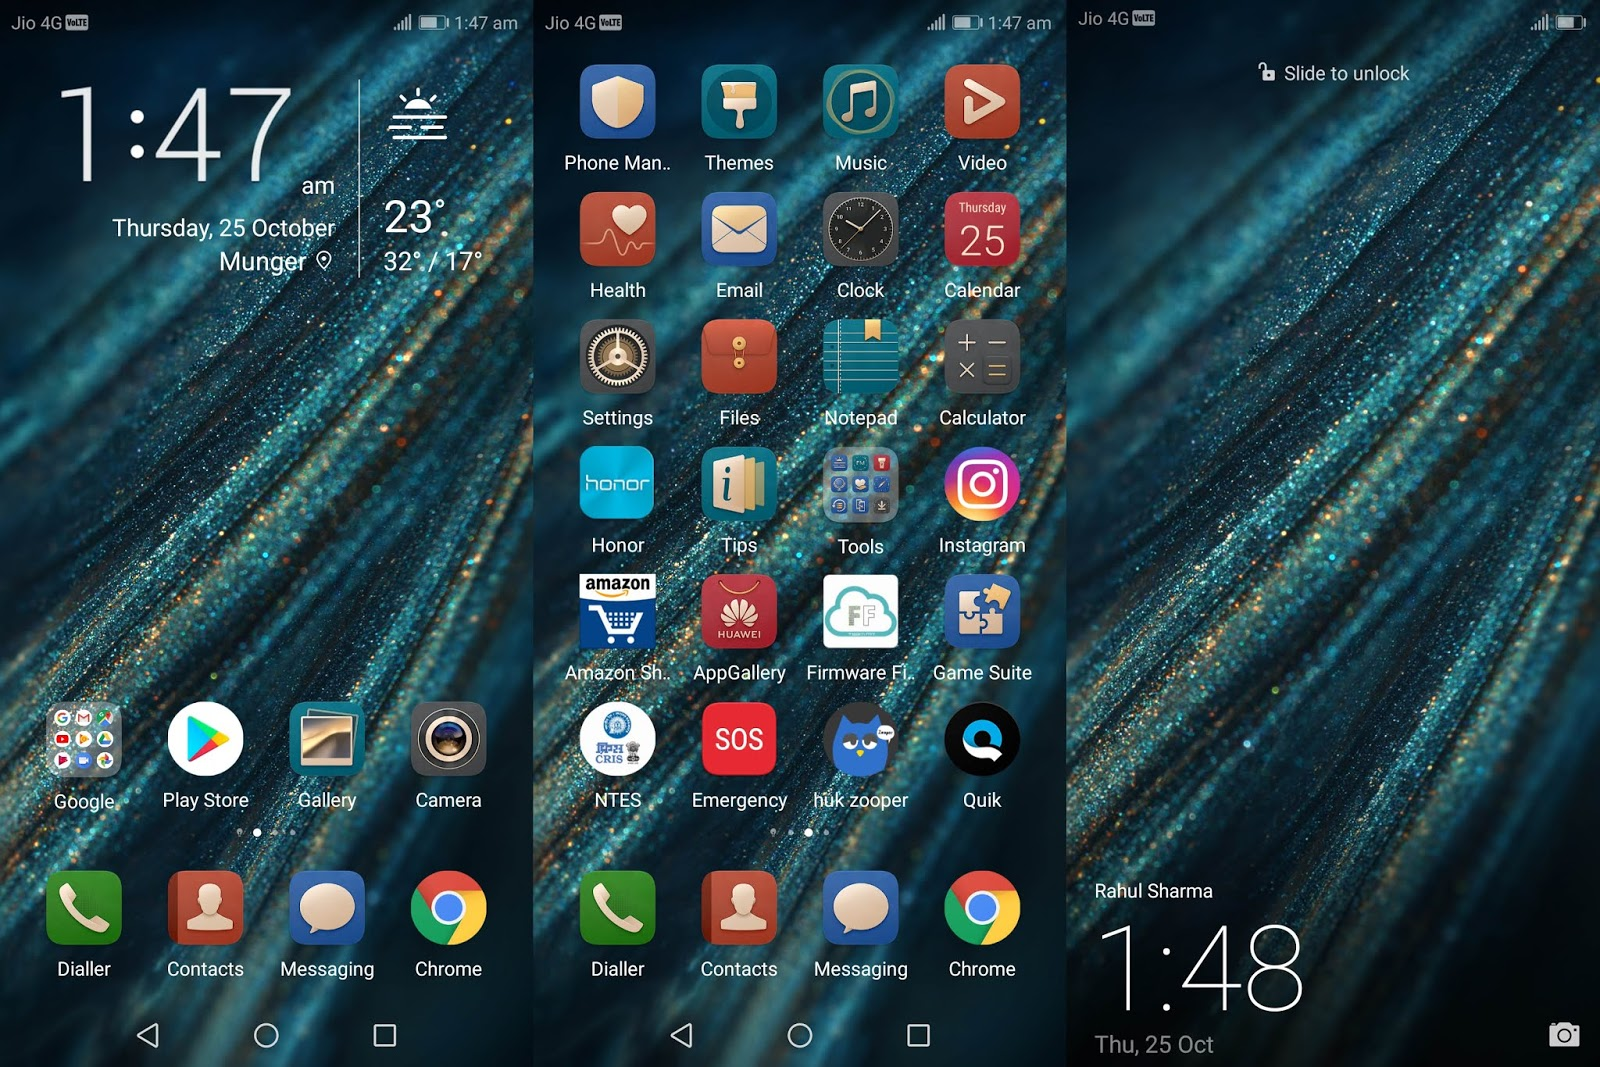 HUAWEI MATE 20 THEMES] Download Latest Huawei Mate 20 Stock Themes